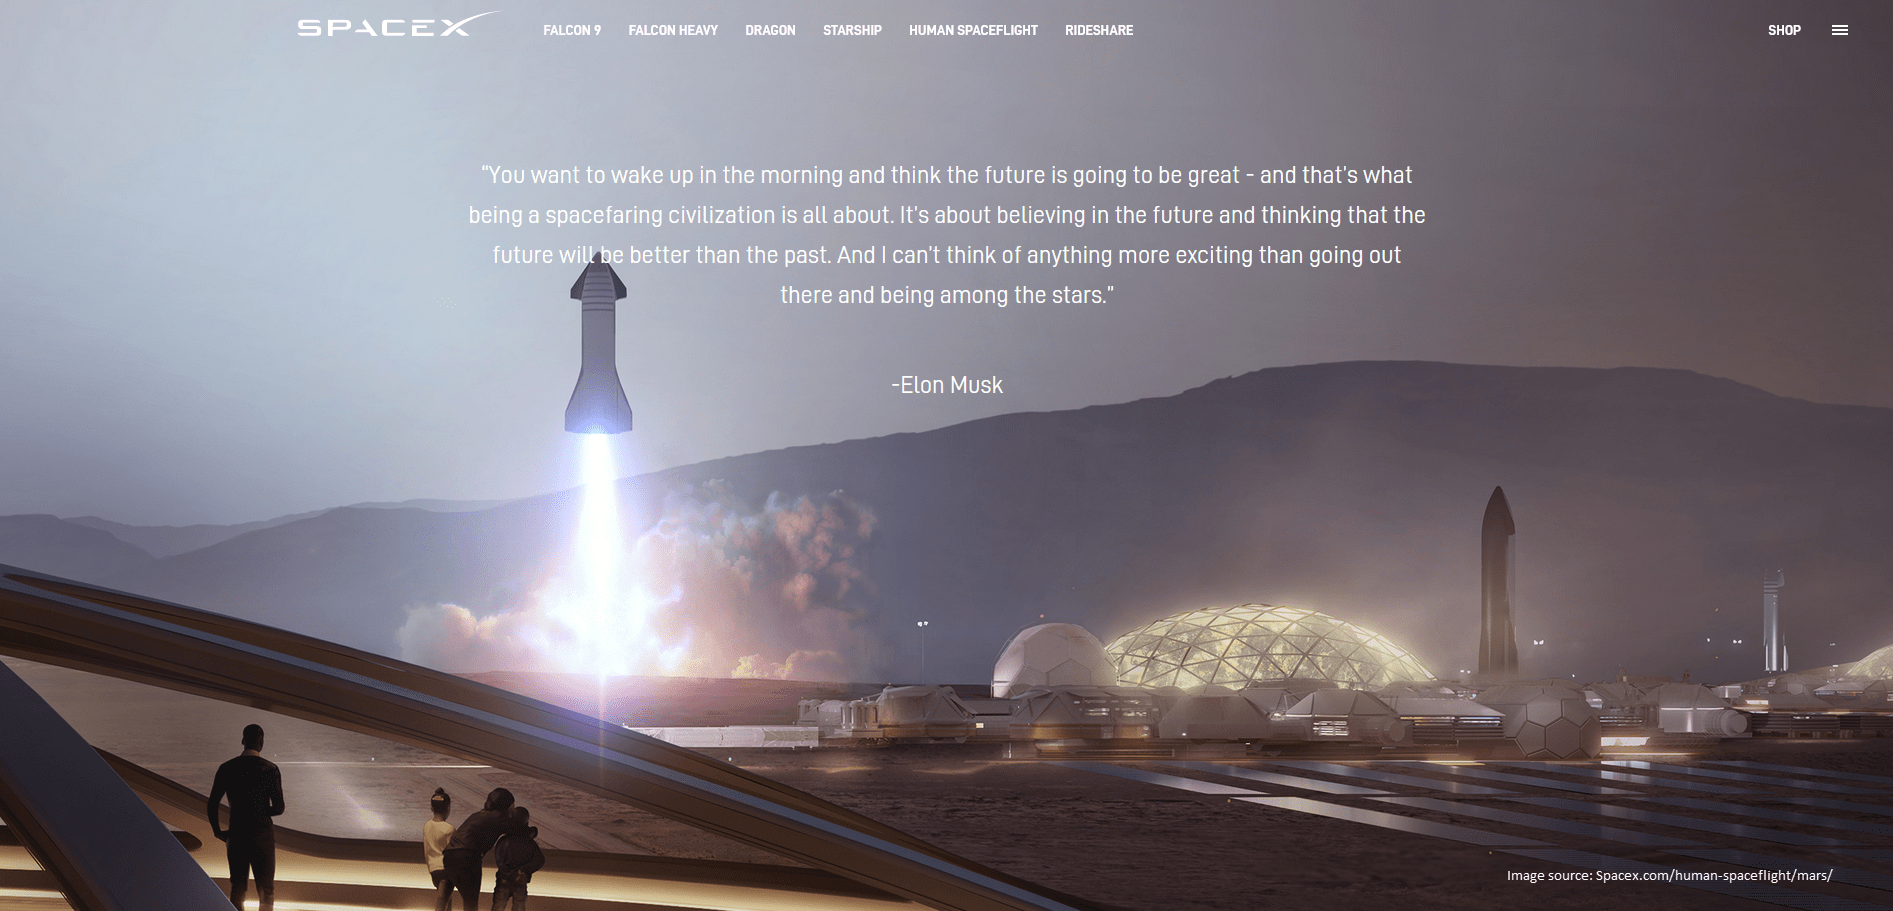 SpaceX Mission Statement